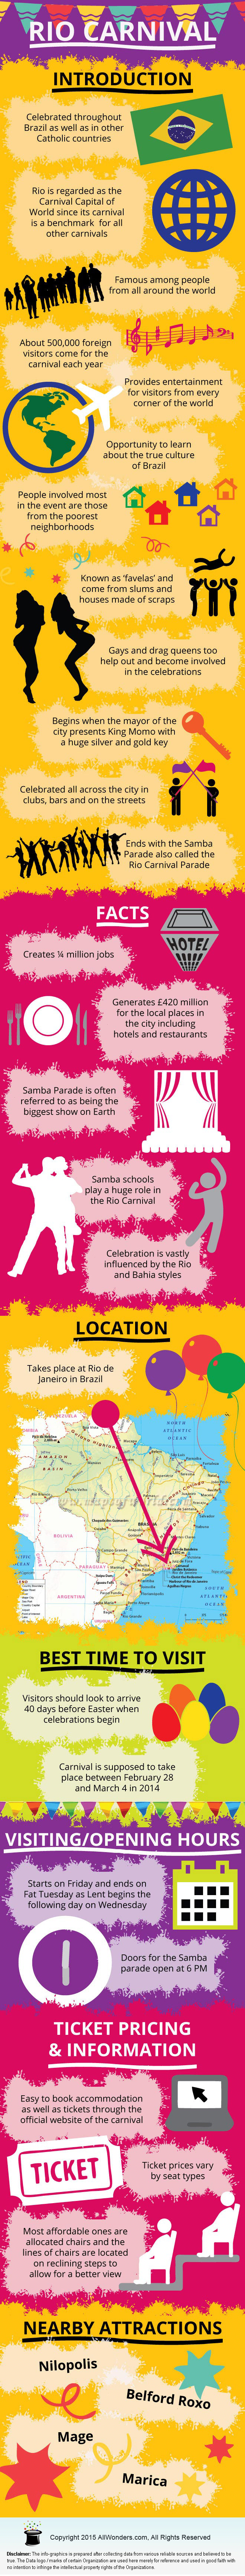 Rio Carnival, Brazil - Facts & Infographic